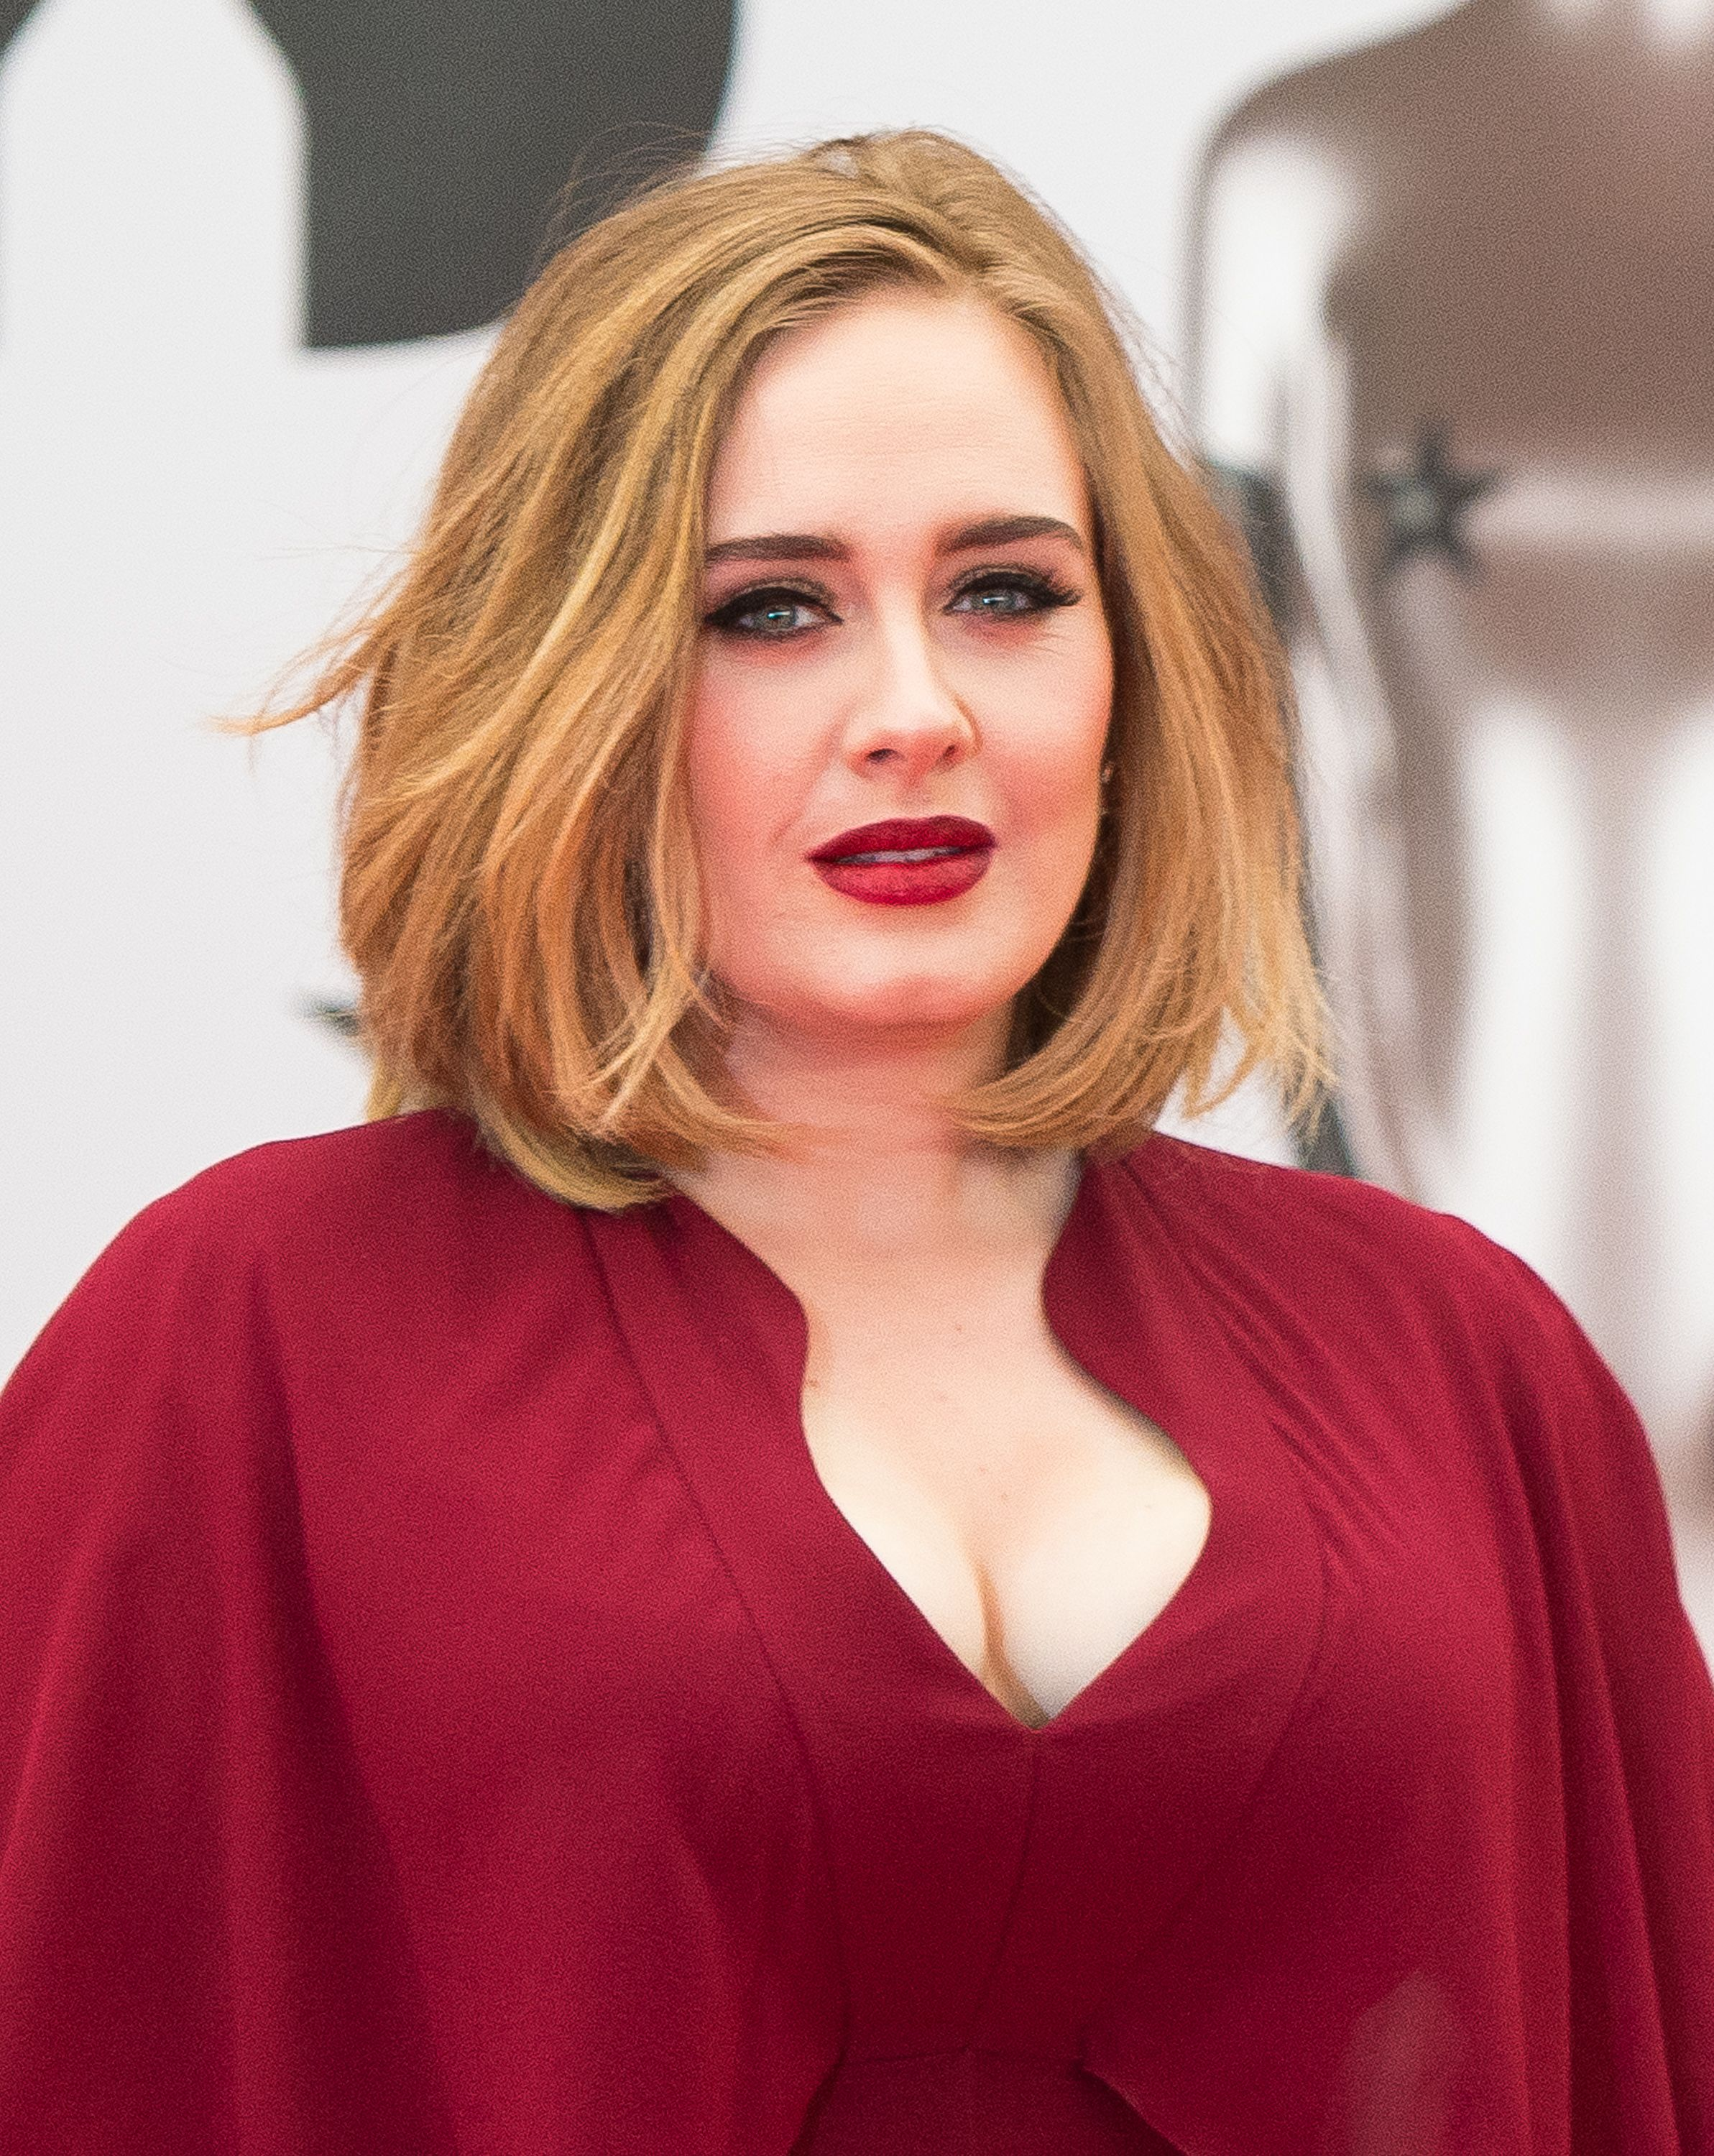 20 Best Haircuts for Round Faces 2019, Hairstyles for Women